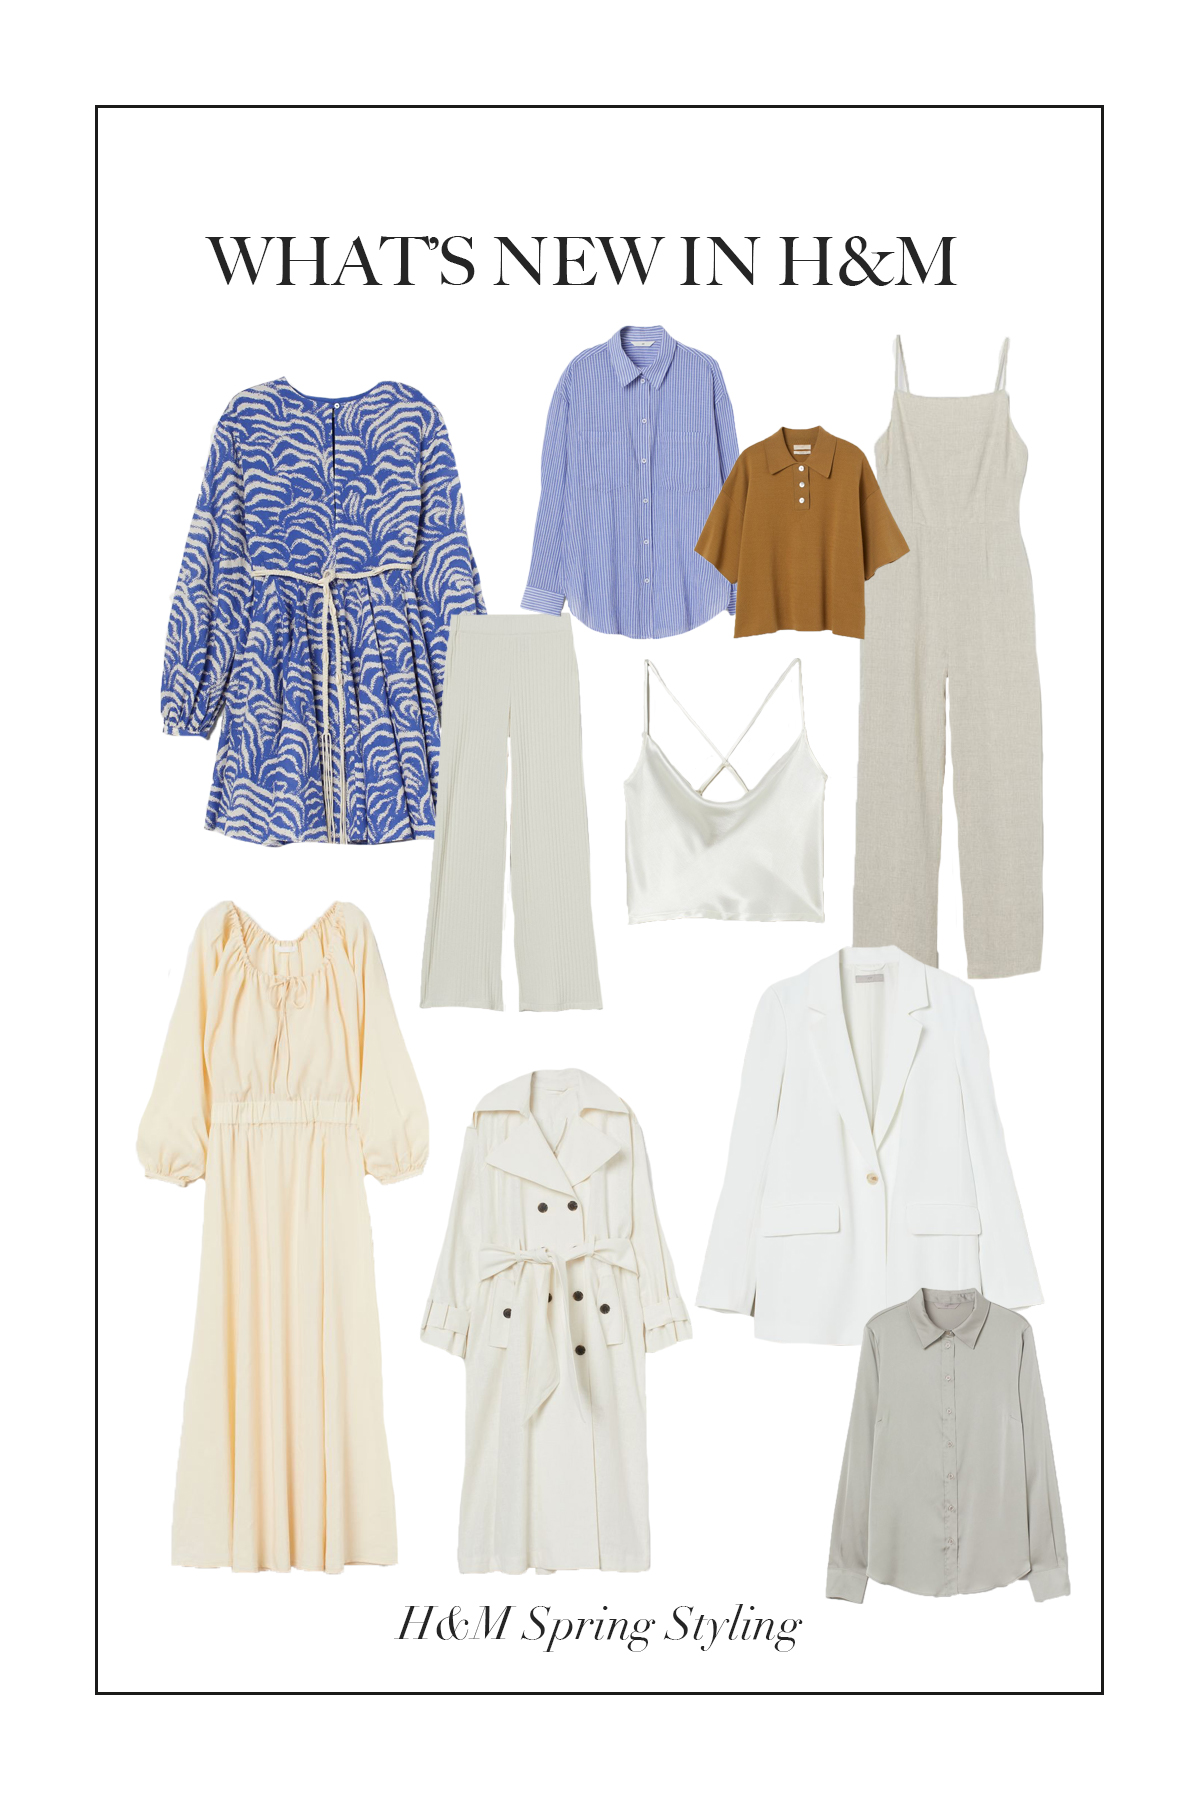 Let's have a good look at some of the gorgeous pieces that are New In H&M for spring !